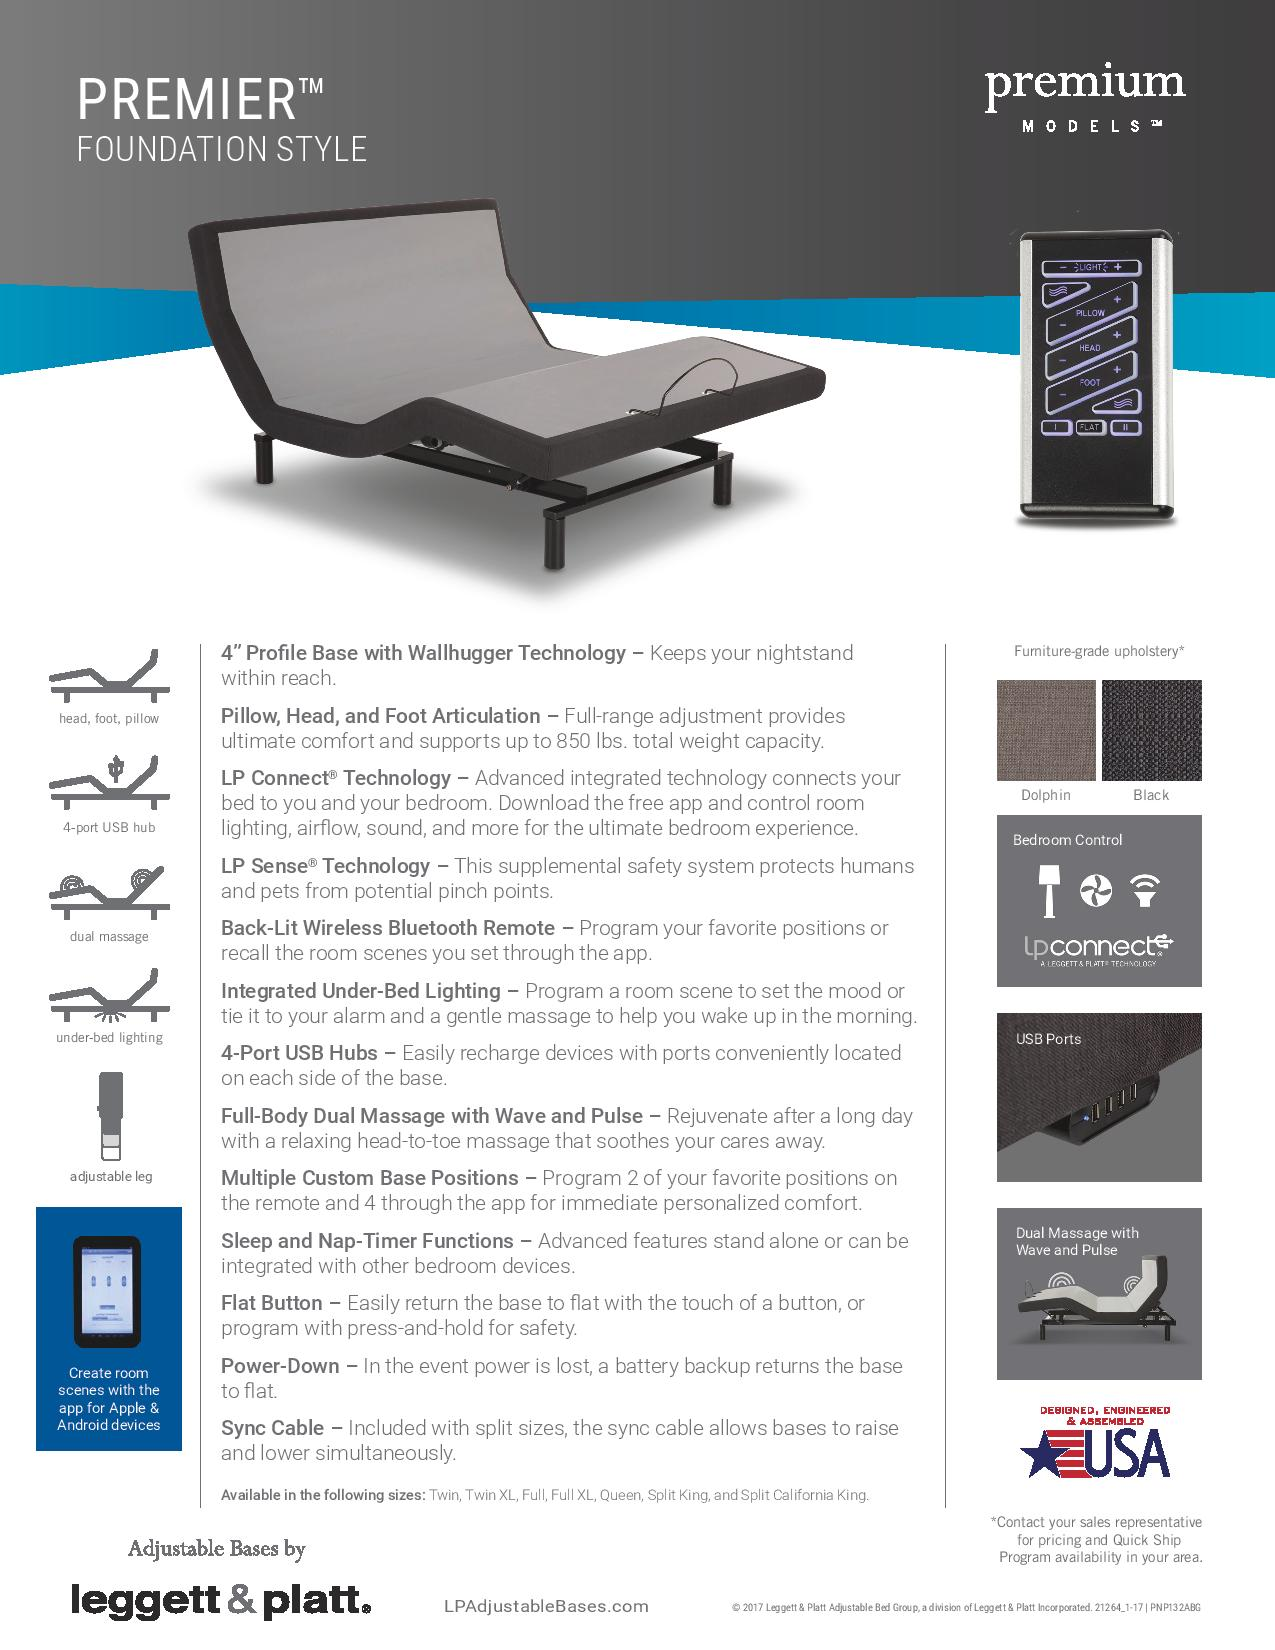 premier-foundation-style-bed-base-page-001